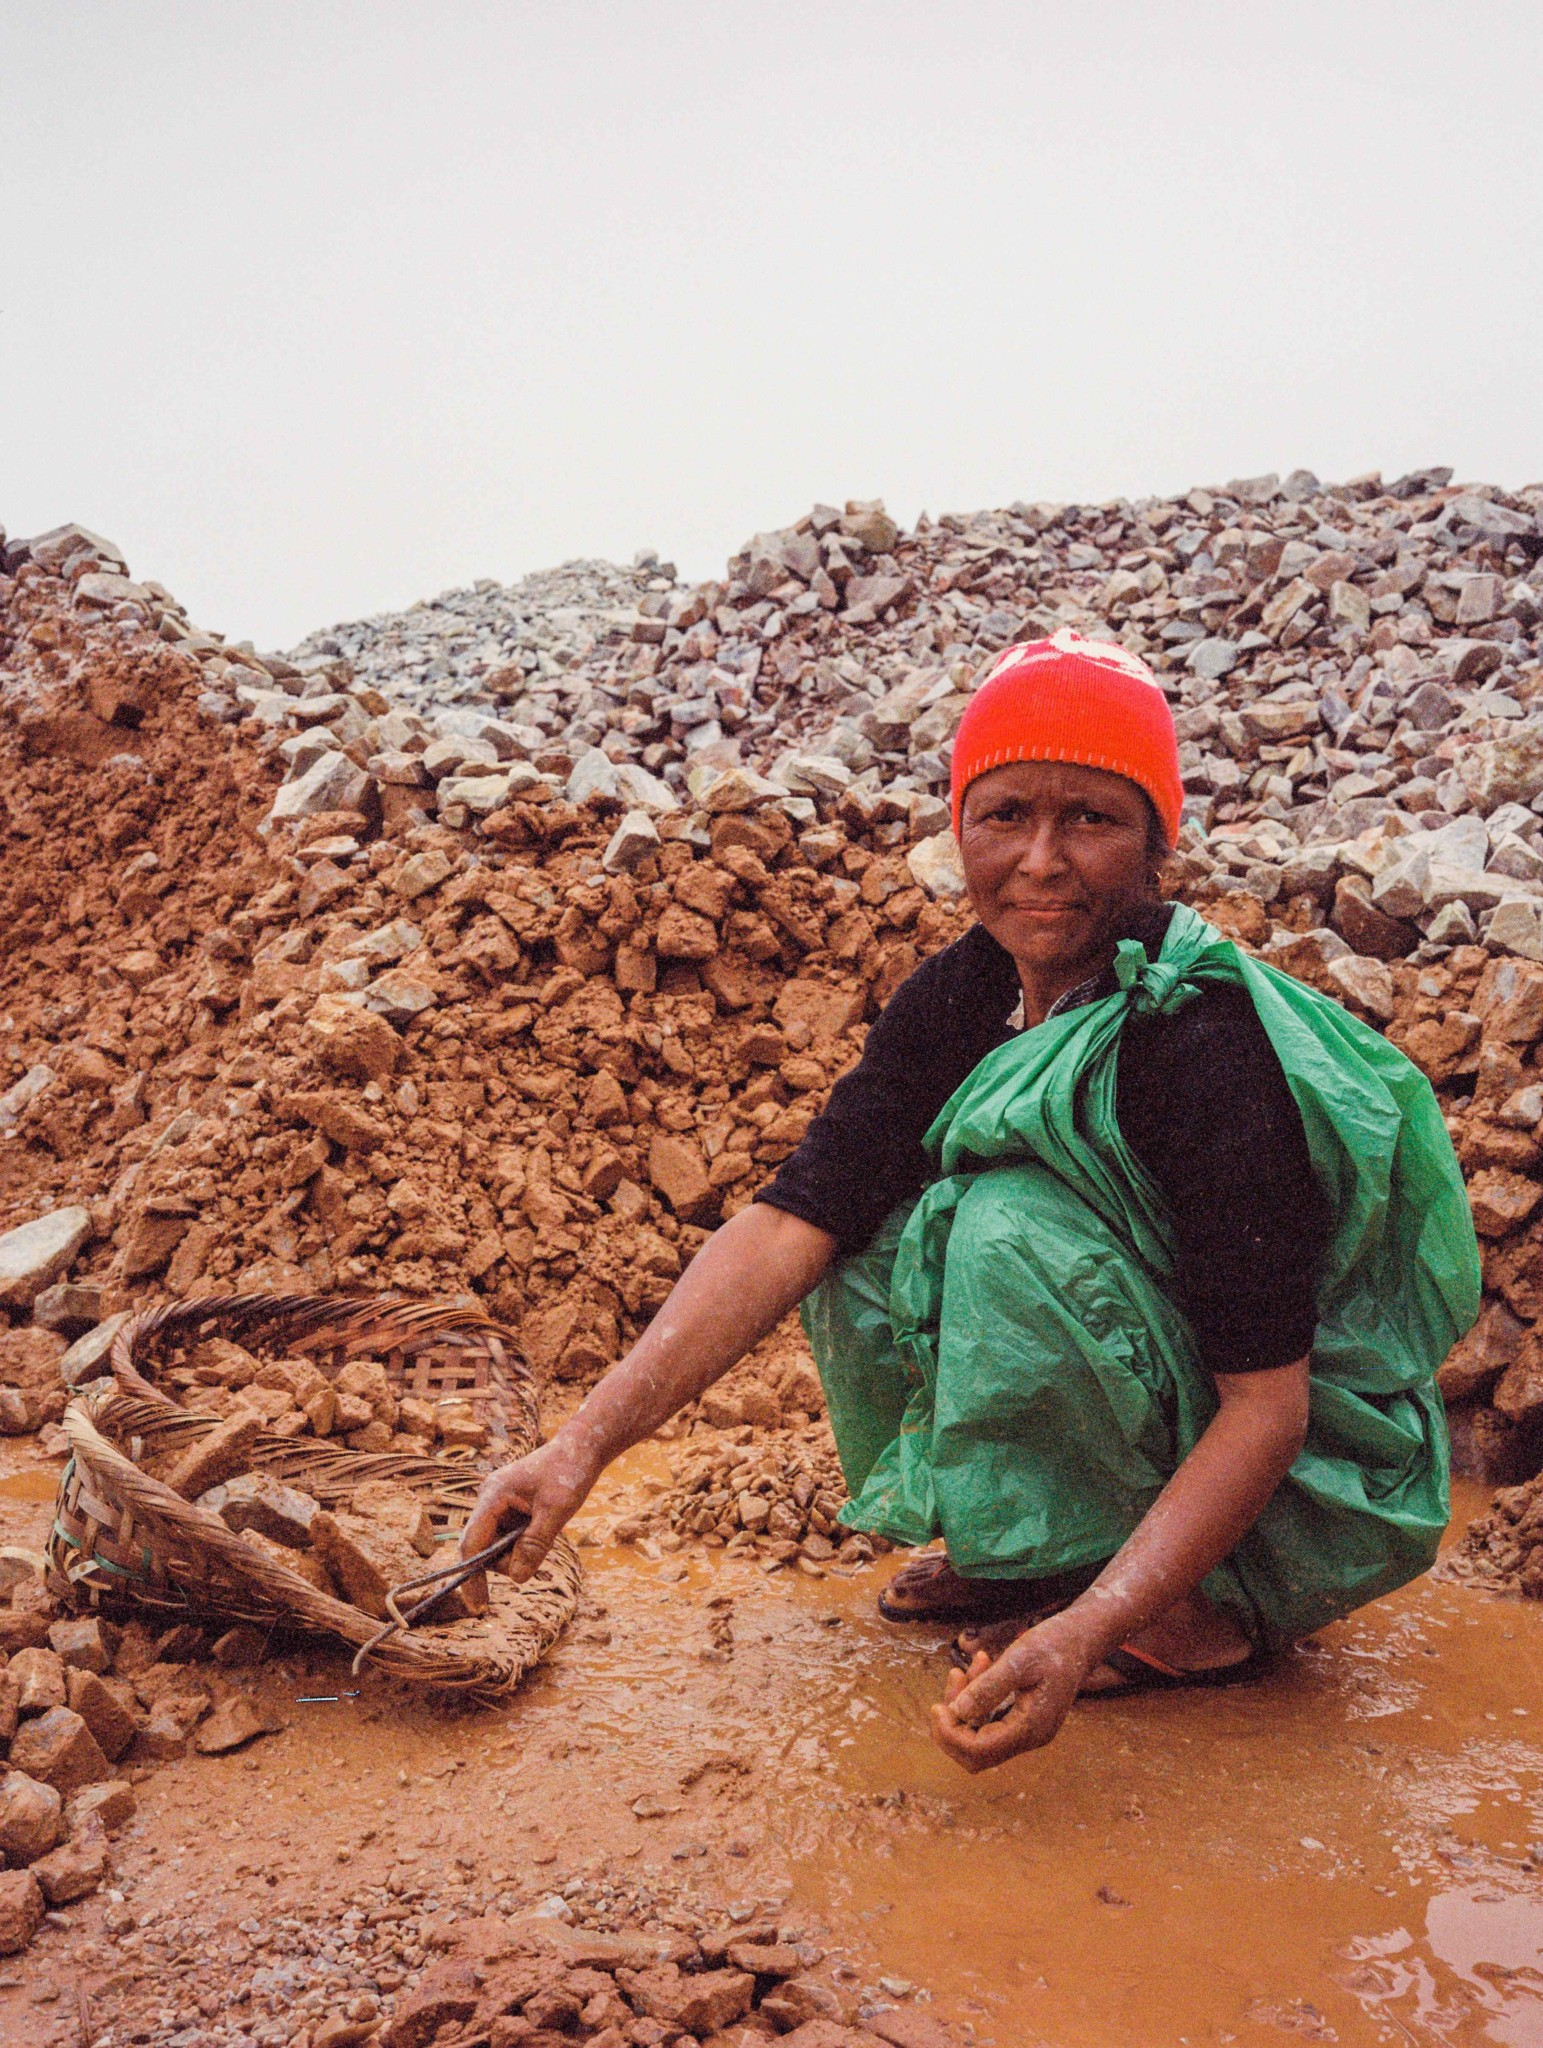 The women and children who break the stone are known as the 'nong shain maw', a Khasi word literally meaning 'the people who break the rock'.